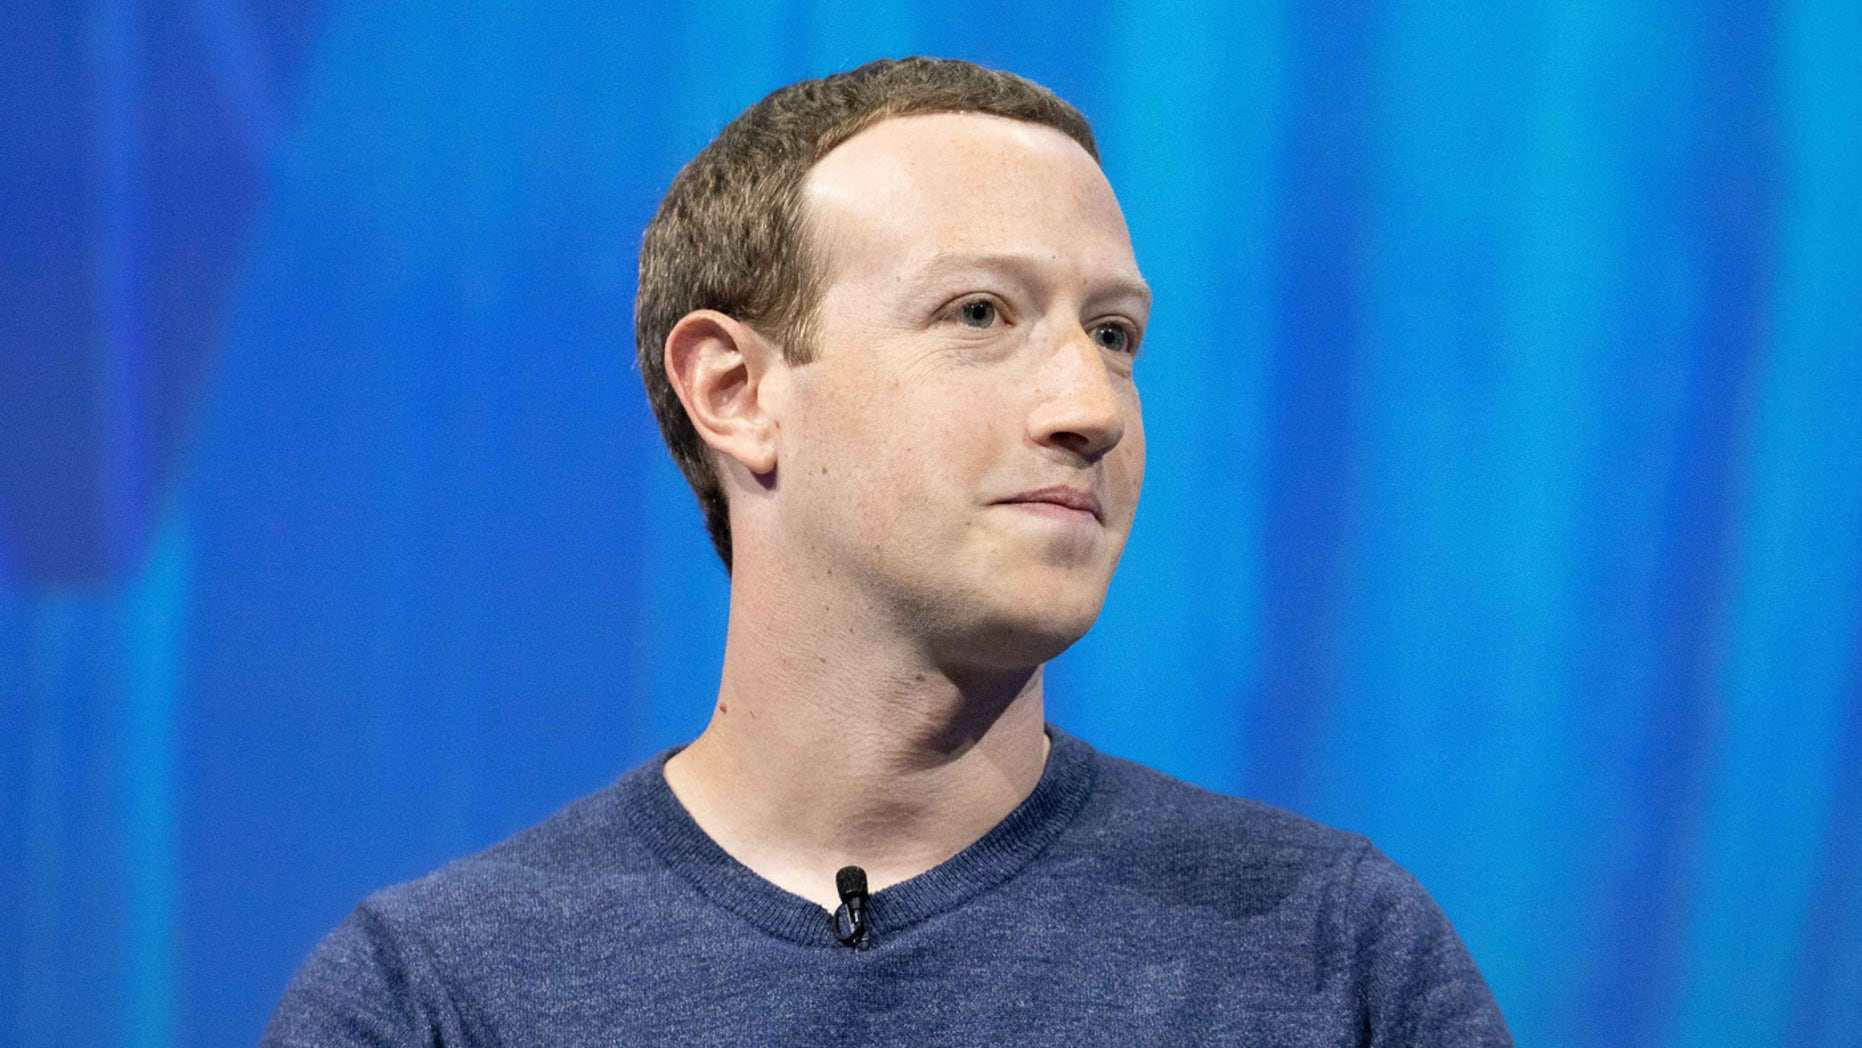 Mark Zuckerberg, chief executive officer and founder of Facebook Inc. attends the Viva Tech start-up and technology gathering at Parc des Expositions Porte de Versailles on May 24, 2018, in Paris.